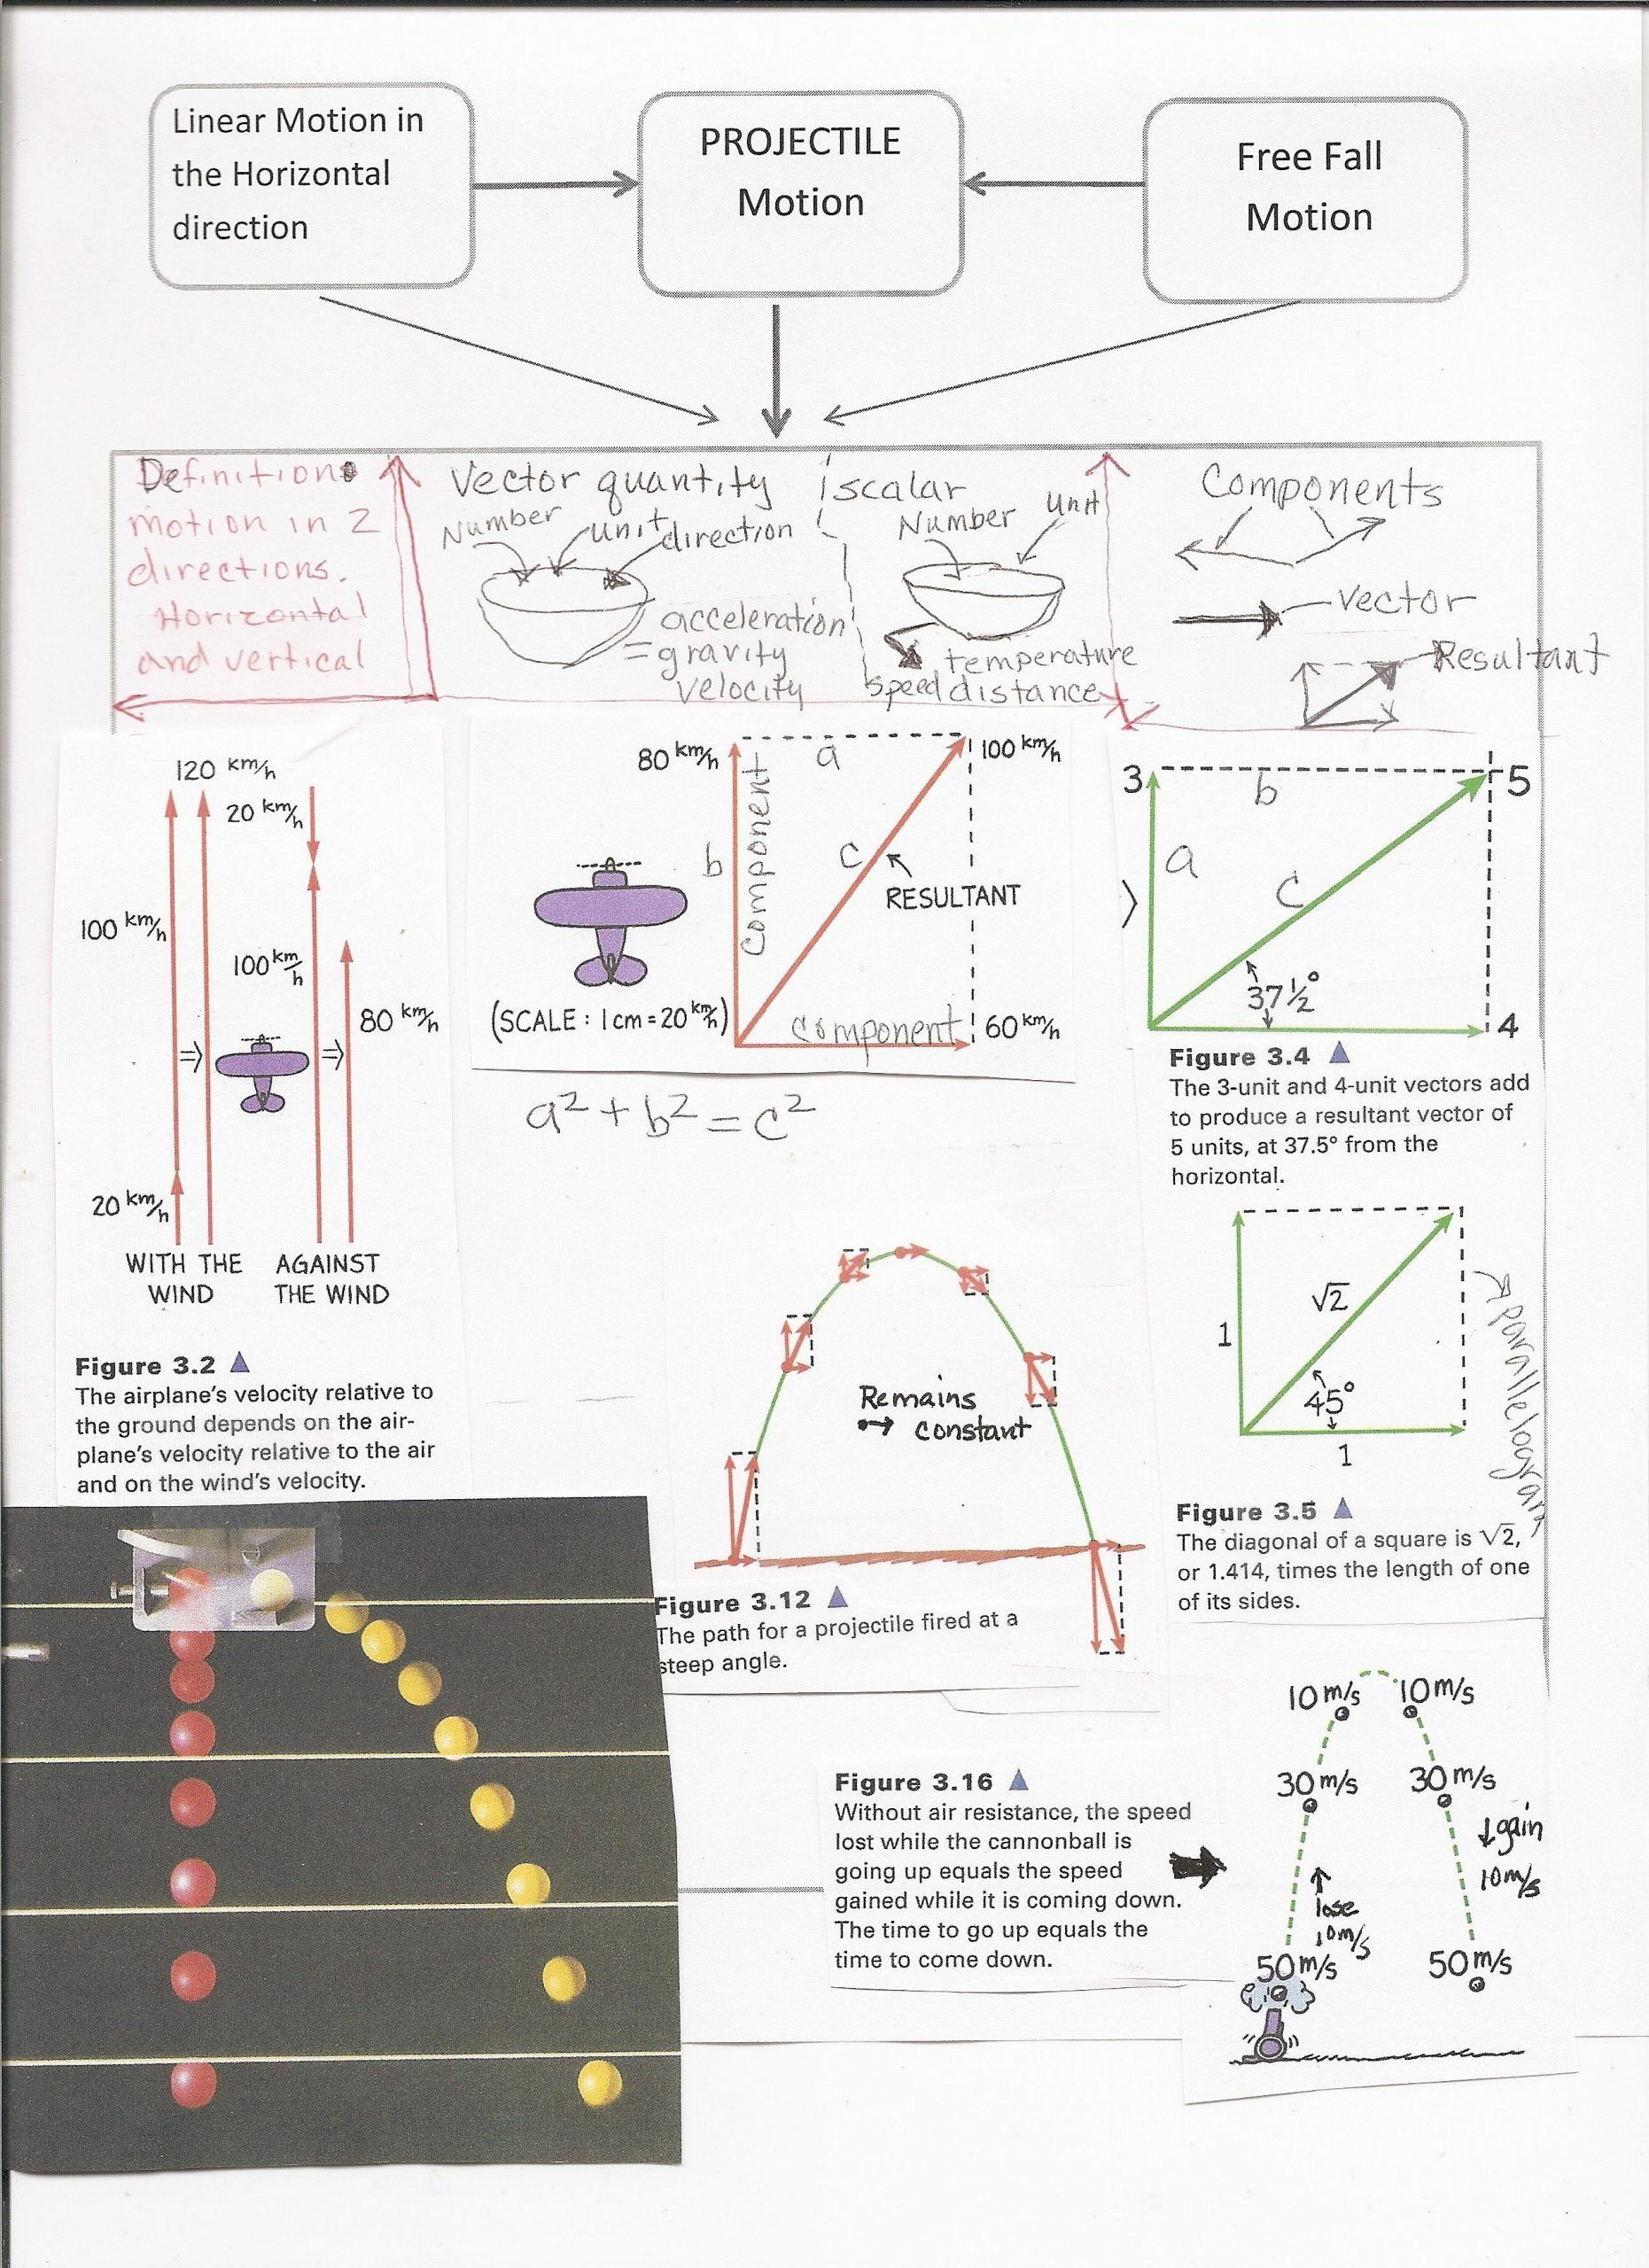 Projectile Motion Worksheet Answers Pin On Physics In 2020 Physics Answers Conceptual Physics Motion Graphs Worksheets